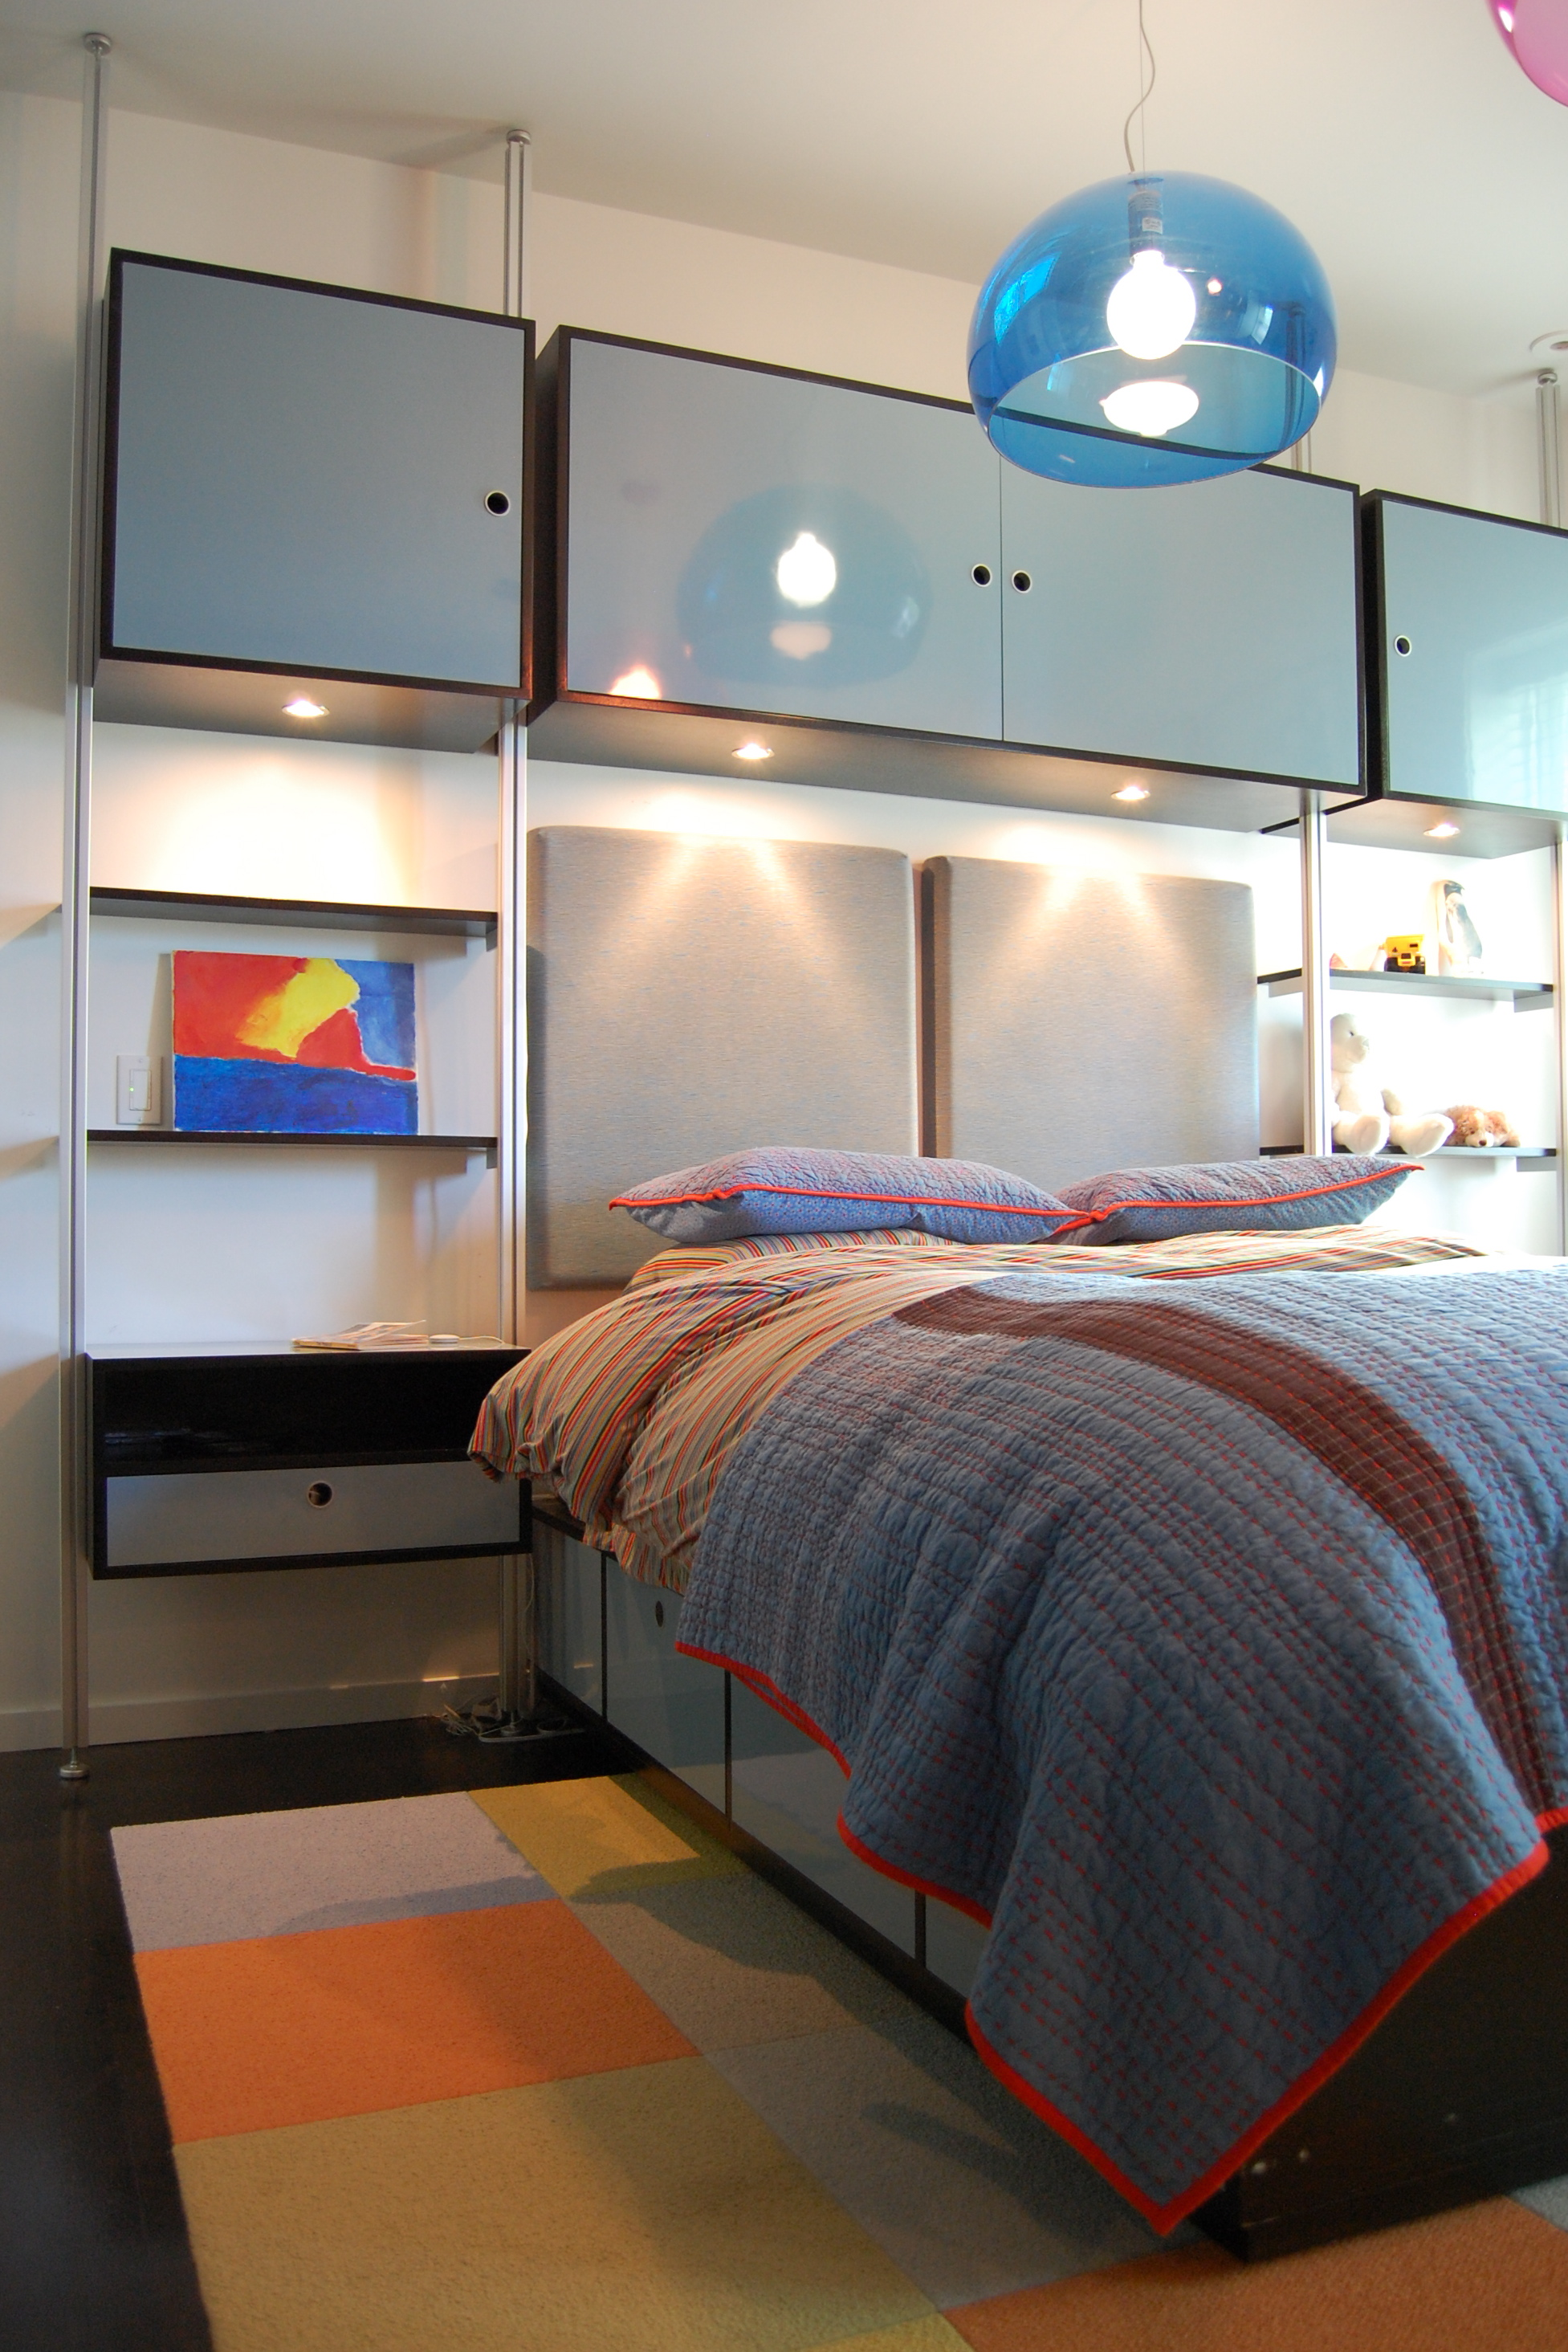 bedroom decorating ideas for 11 year old boys or girls with ...